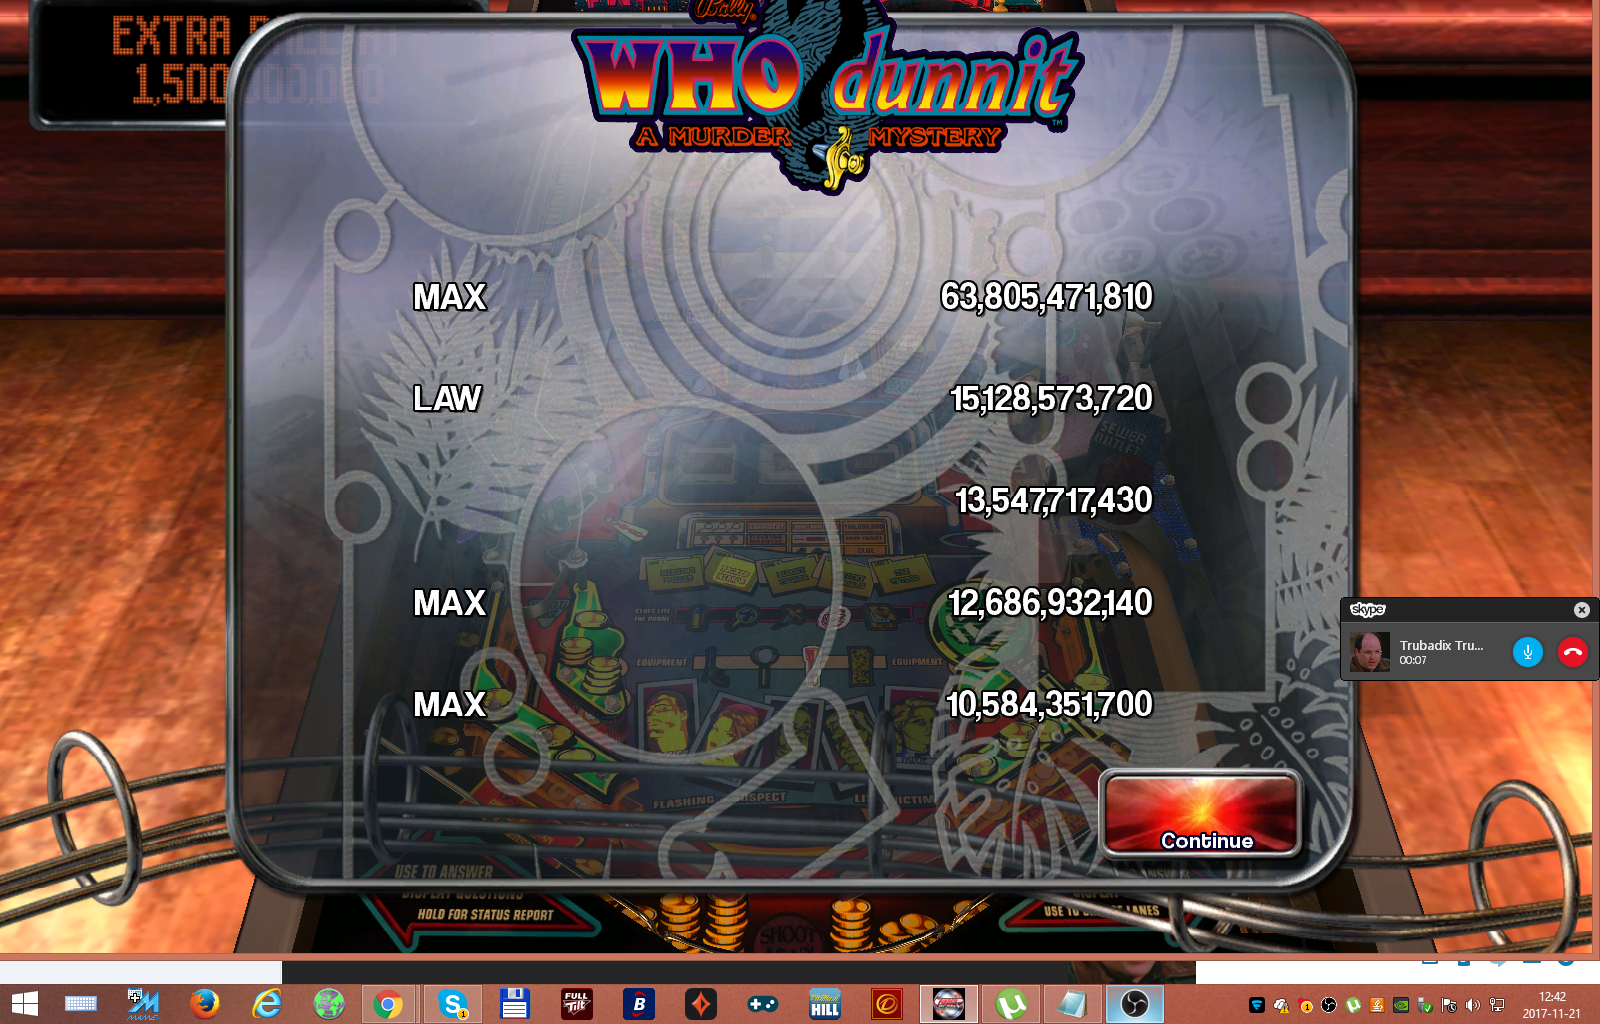 Pinball Arcade: WHO Dunnit 63,805,471,810 points